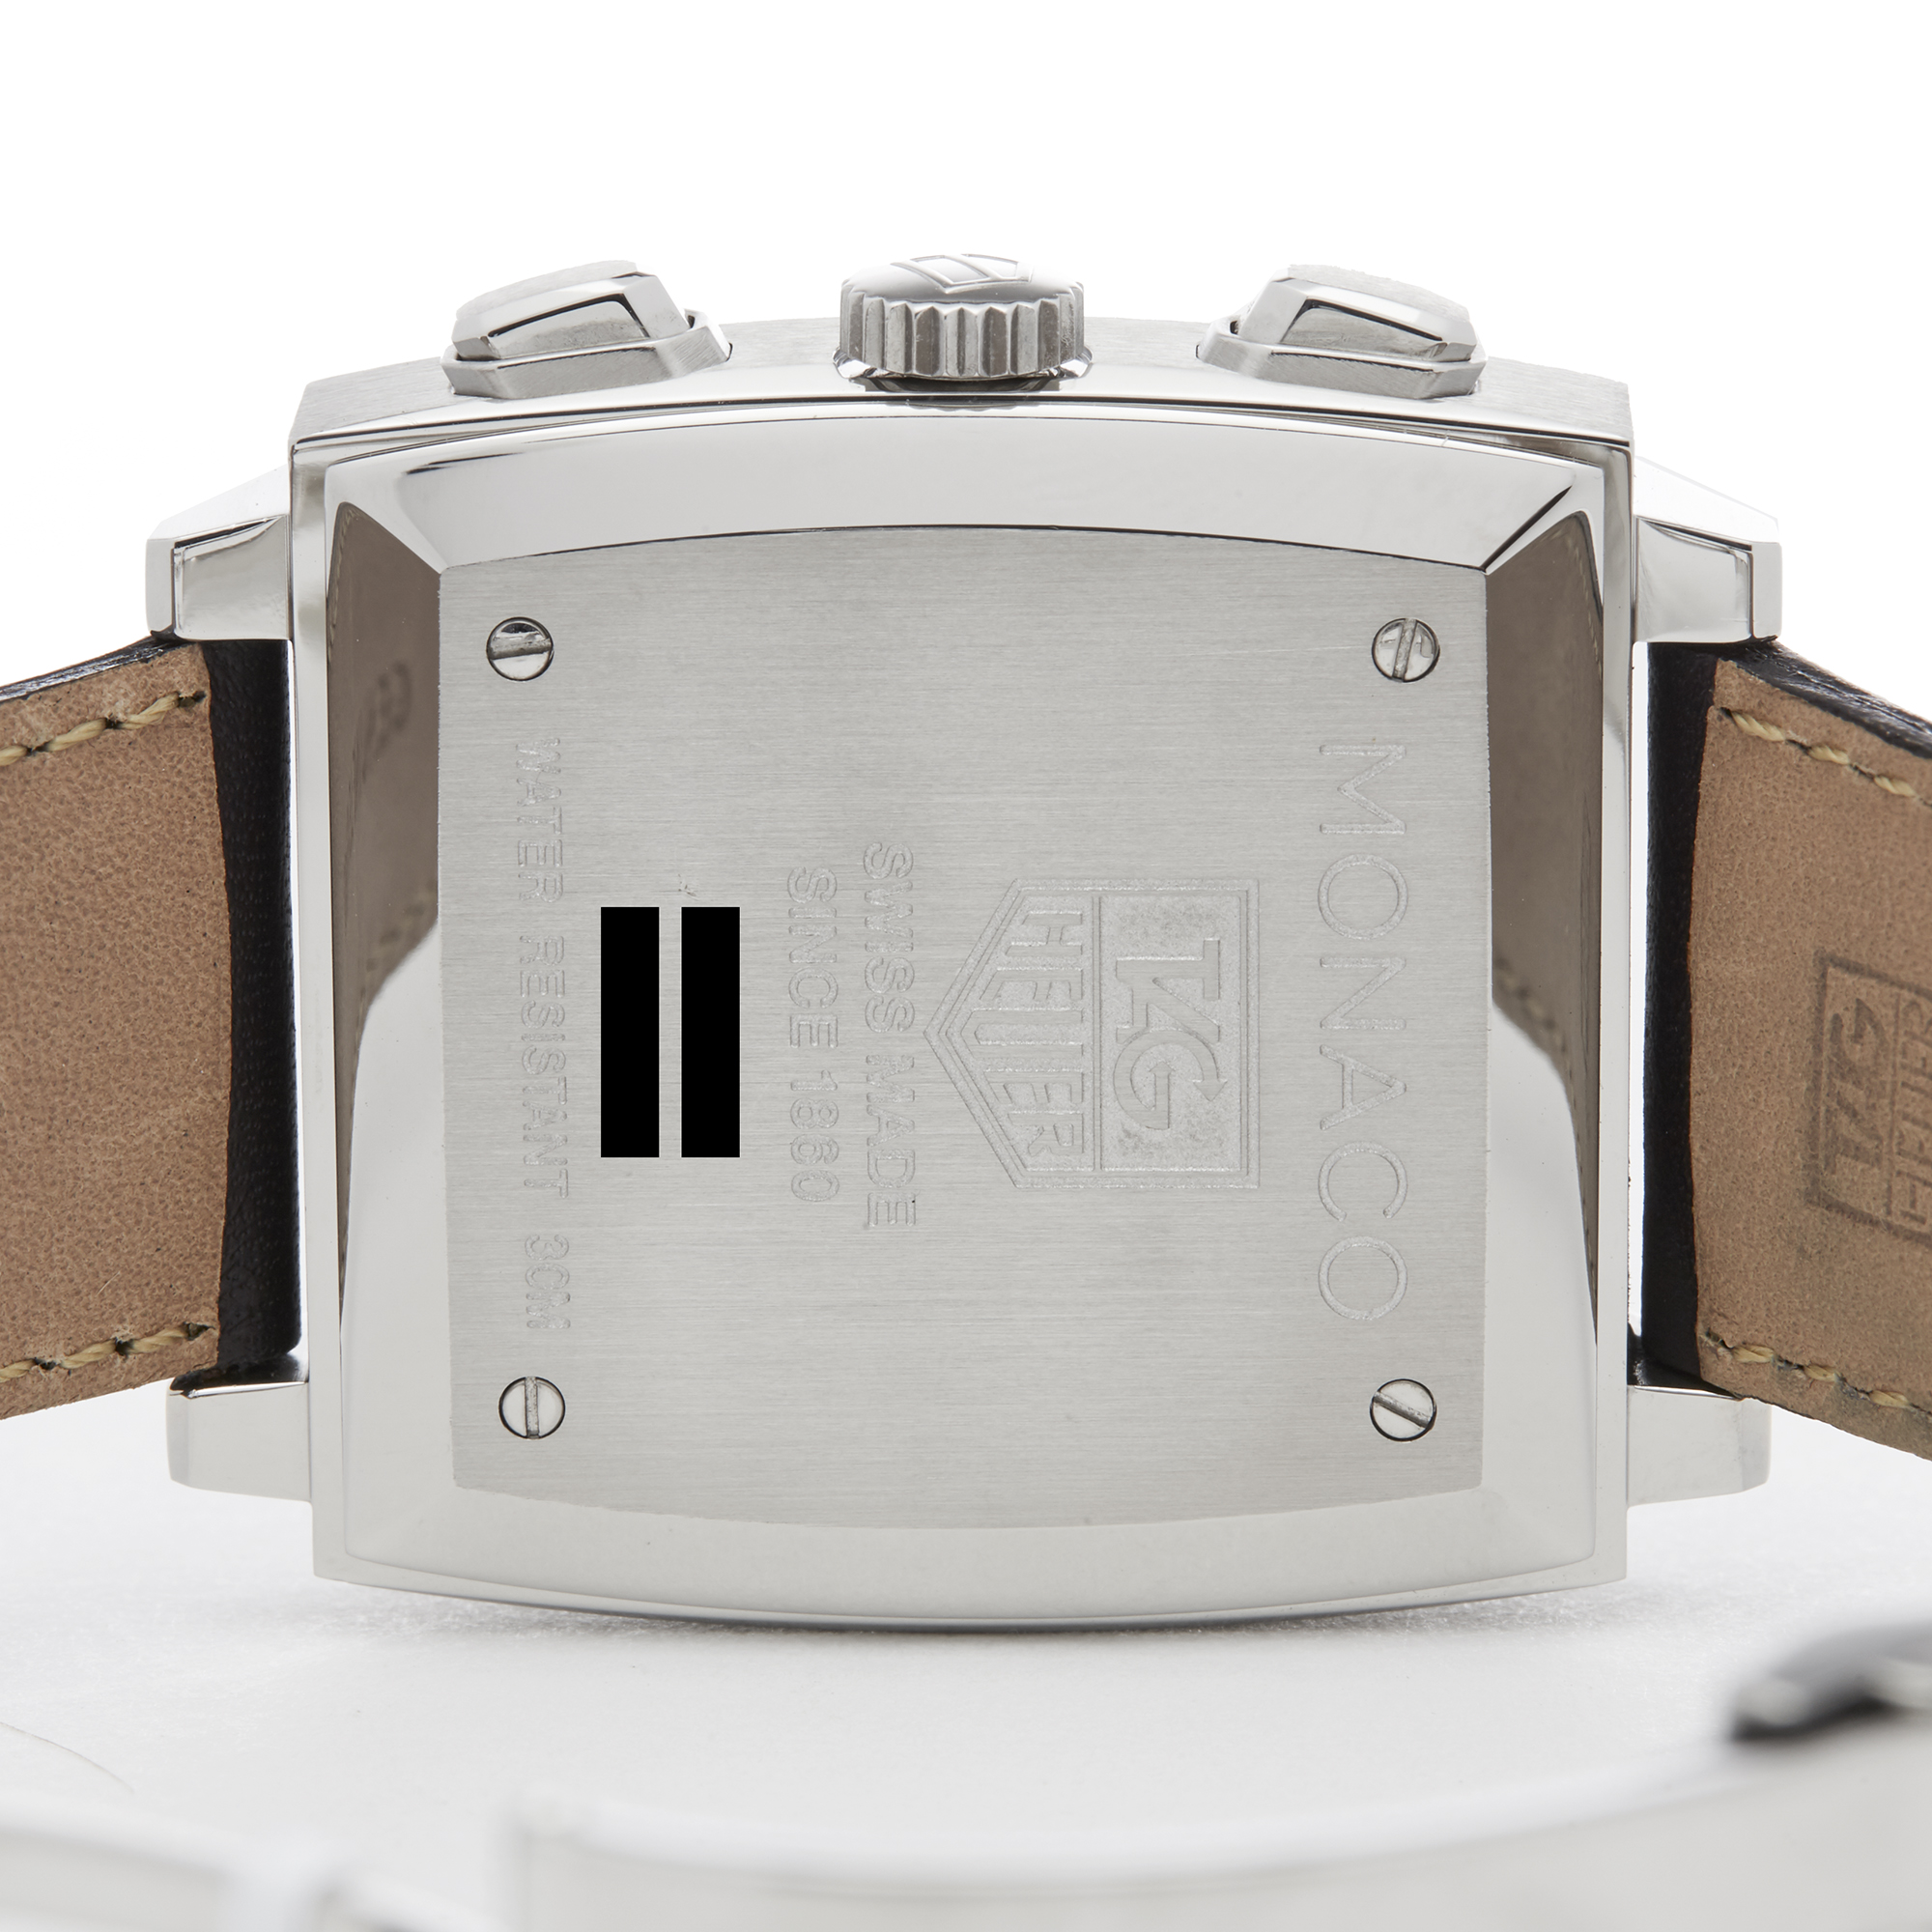 Tag Heuer Monaco CW2113-0 Men Stainless Steel Chronograph Watch - Image 4 of 8